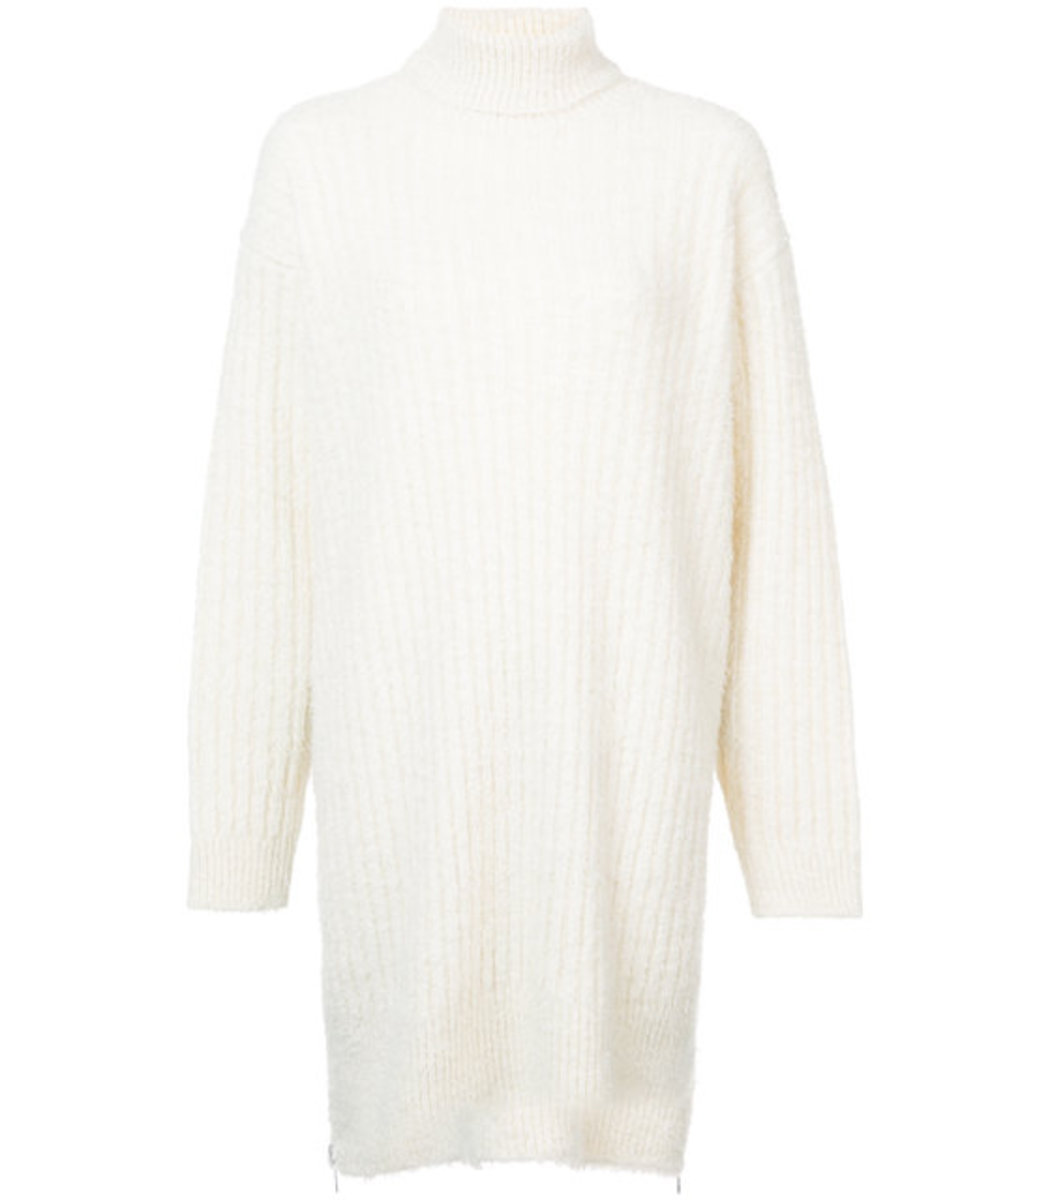 Givenchy Cream Turtle Neck Sweater Dress In White Modesens